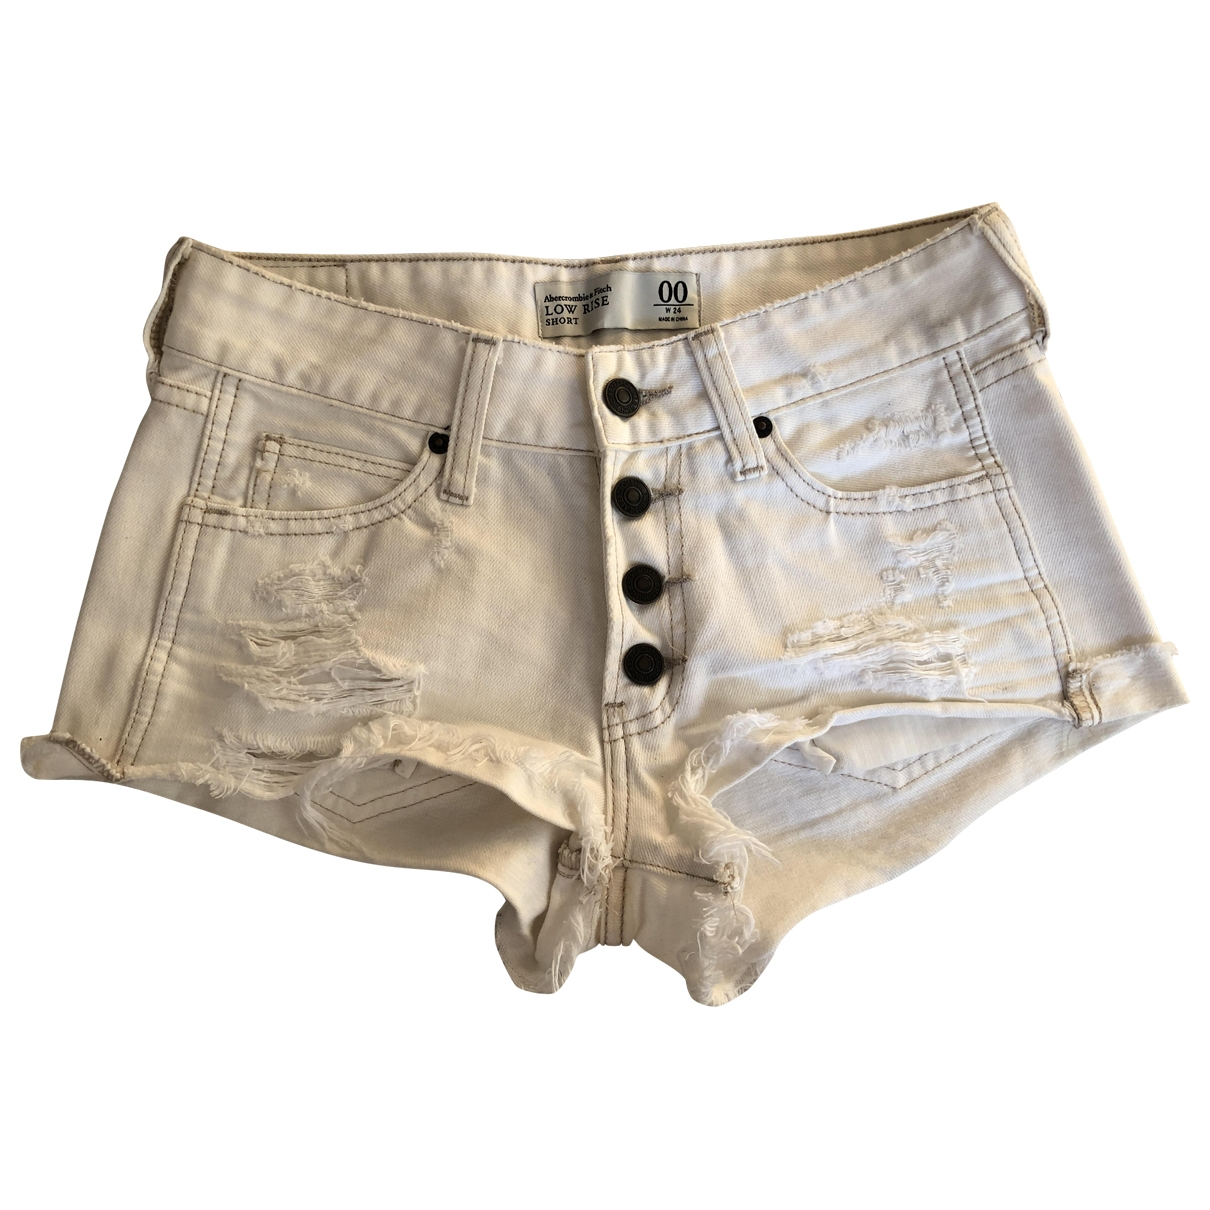 Abercrombie & Fitch \N White Denim - Jeans Shorts for Women XS International